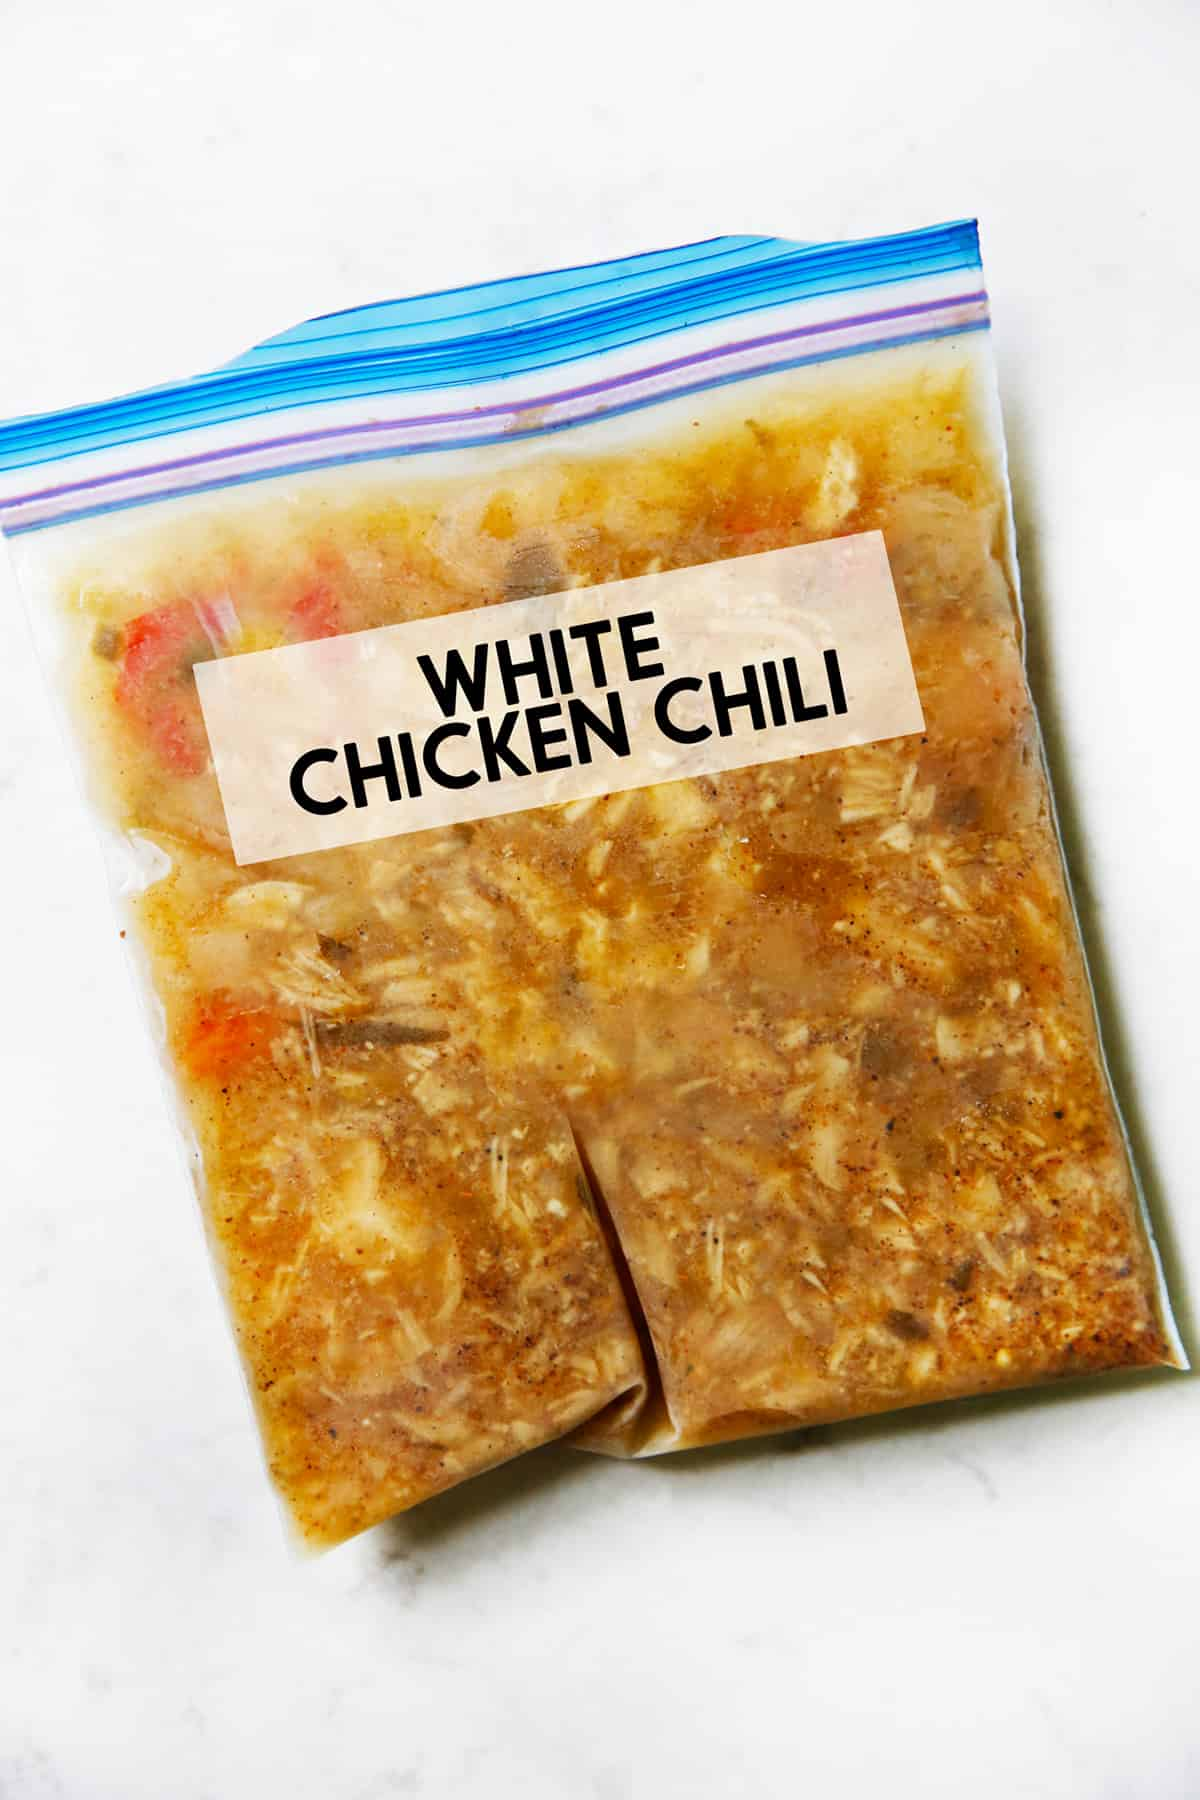 A bag of white chicken chili for the freezer.